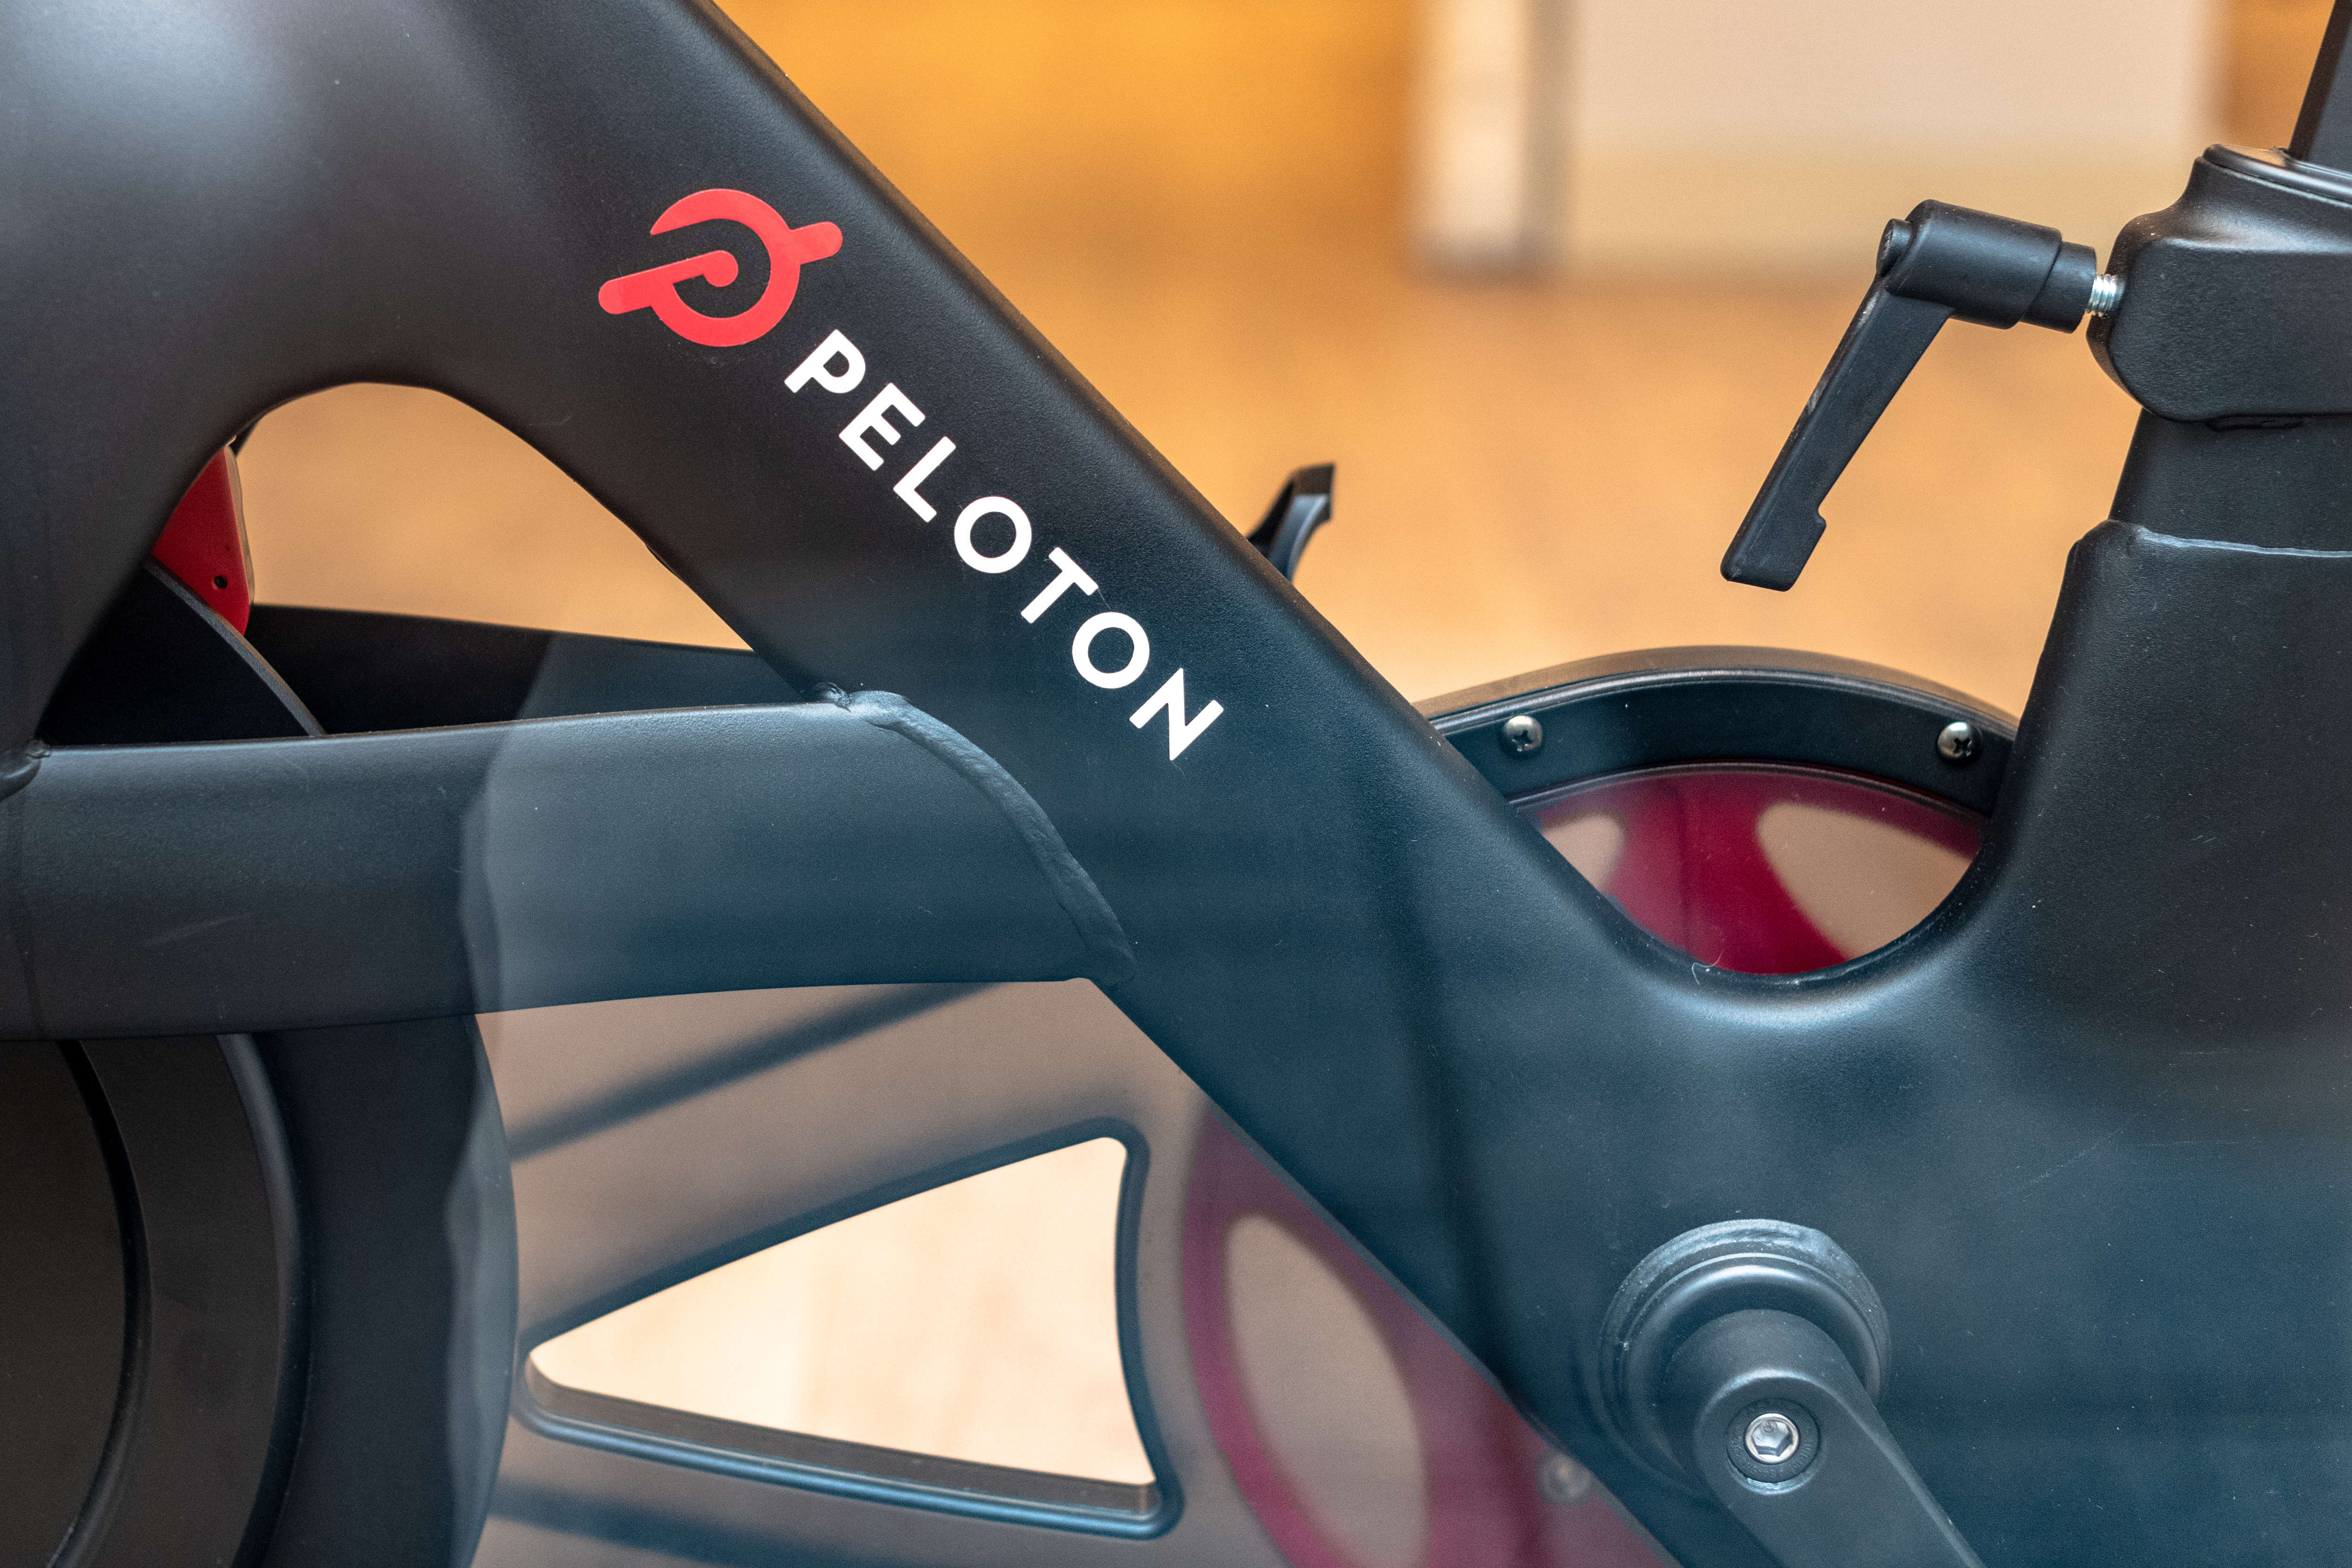 Part of a 'Peloton' gym bicycle which is in exhibit on a